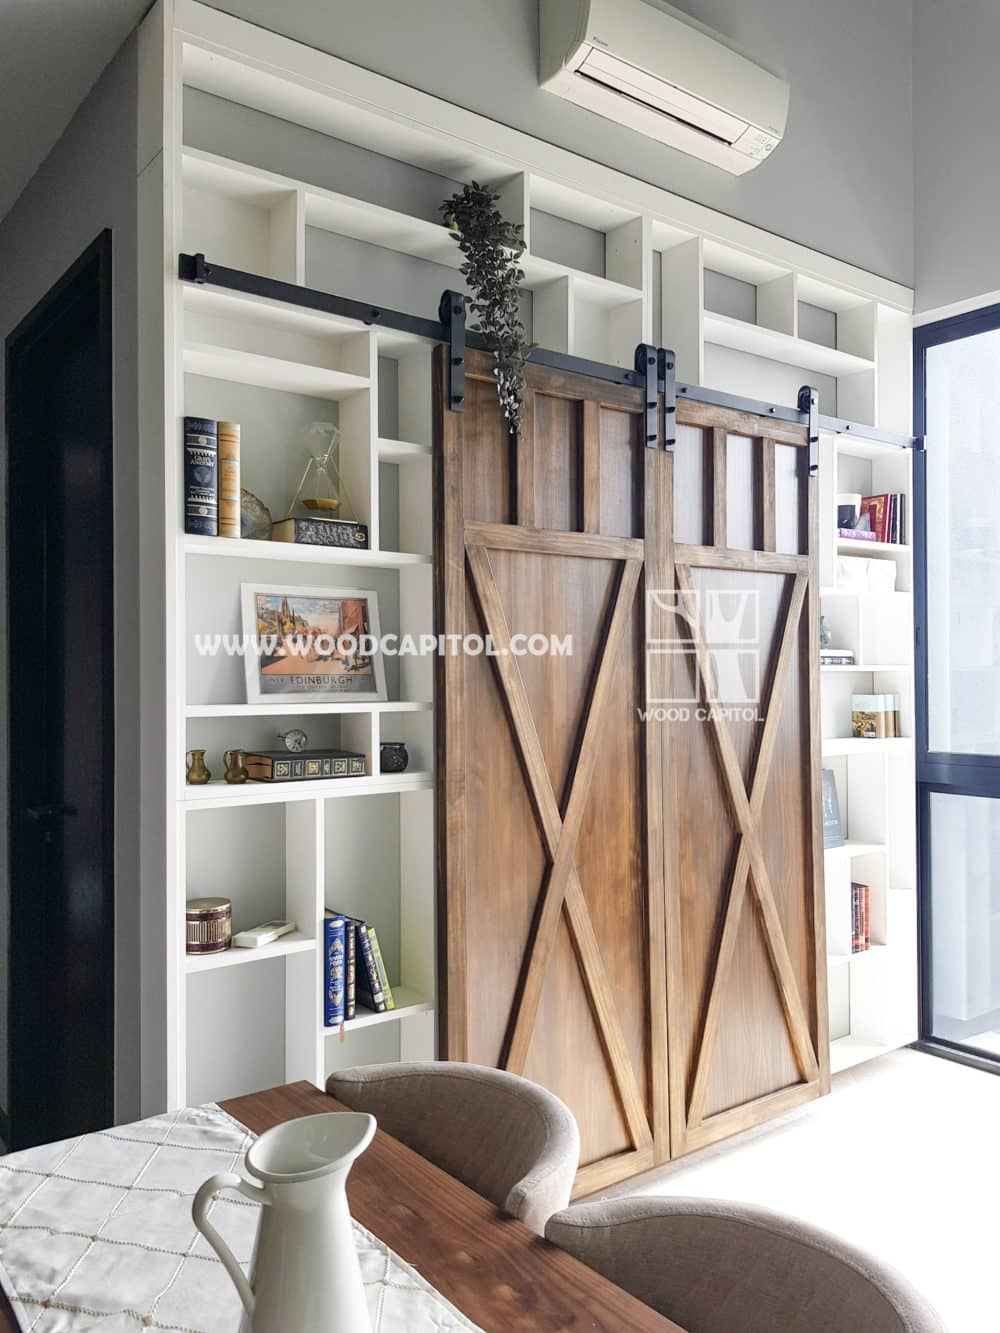 Wood Capitol Dual Sliding Barn Door